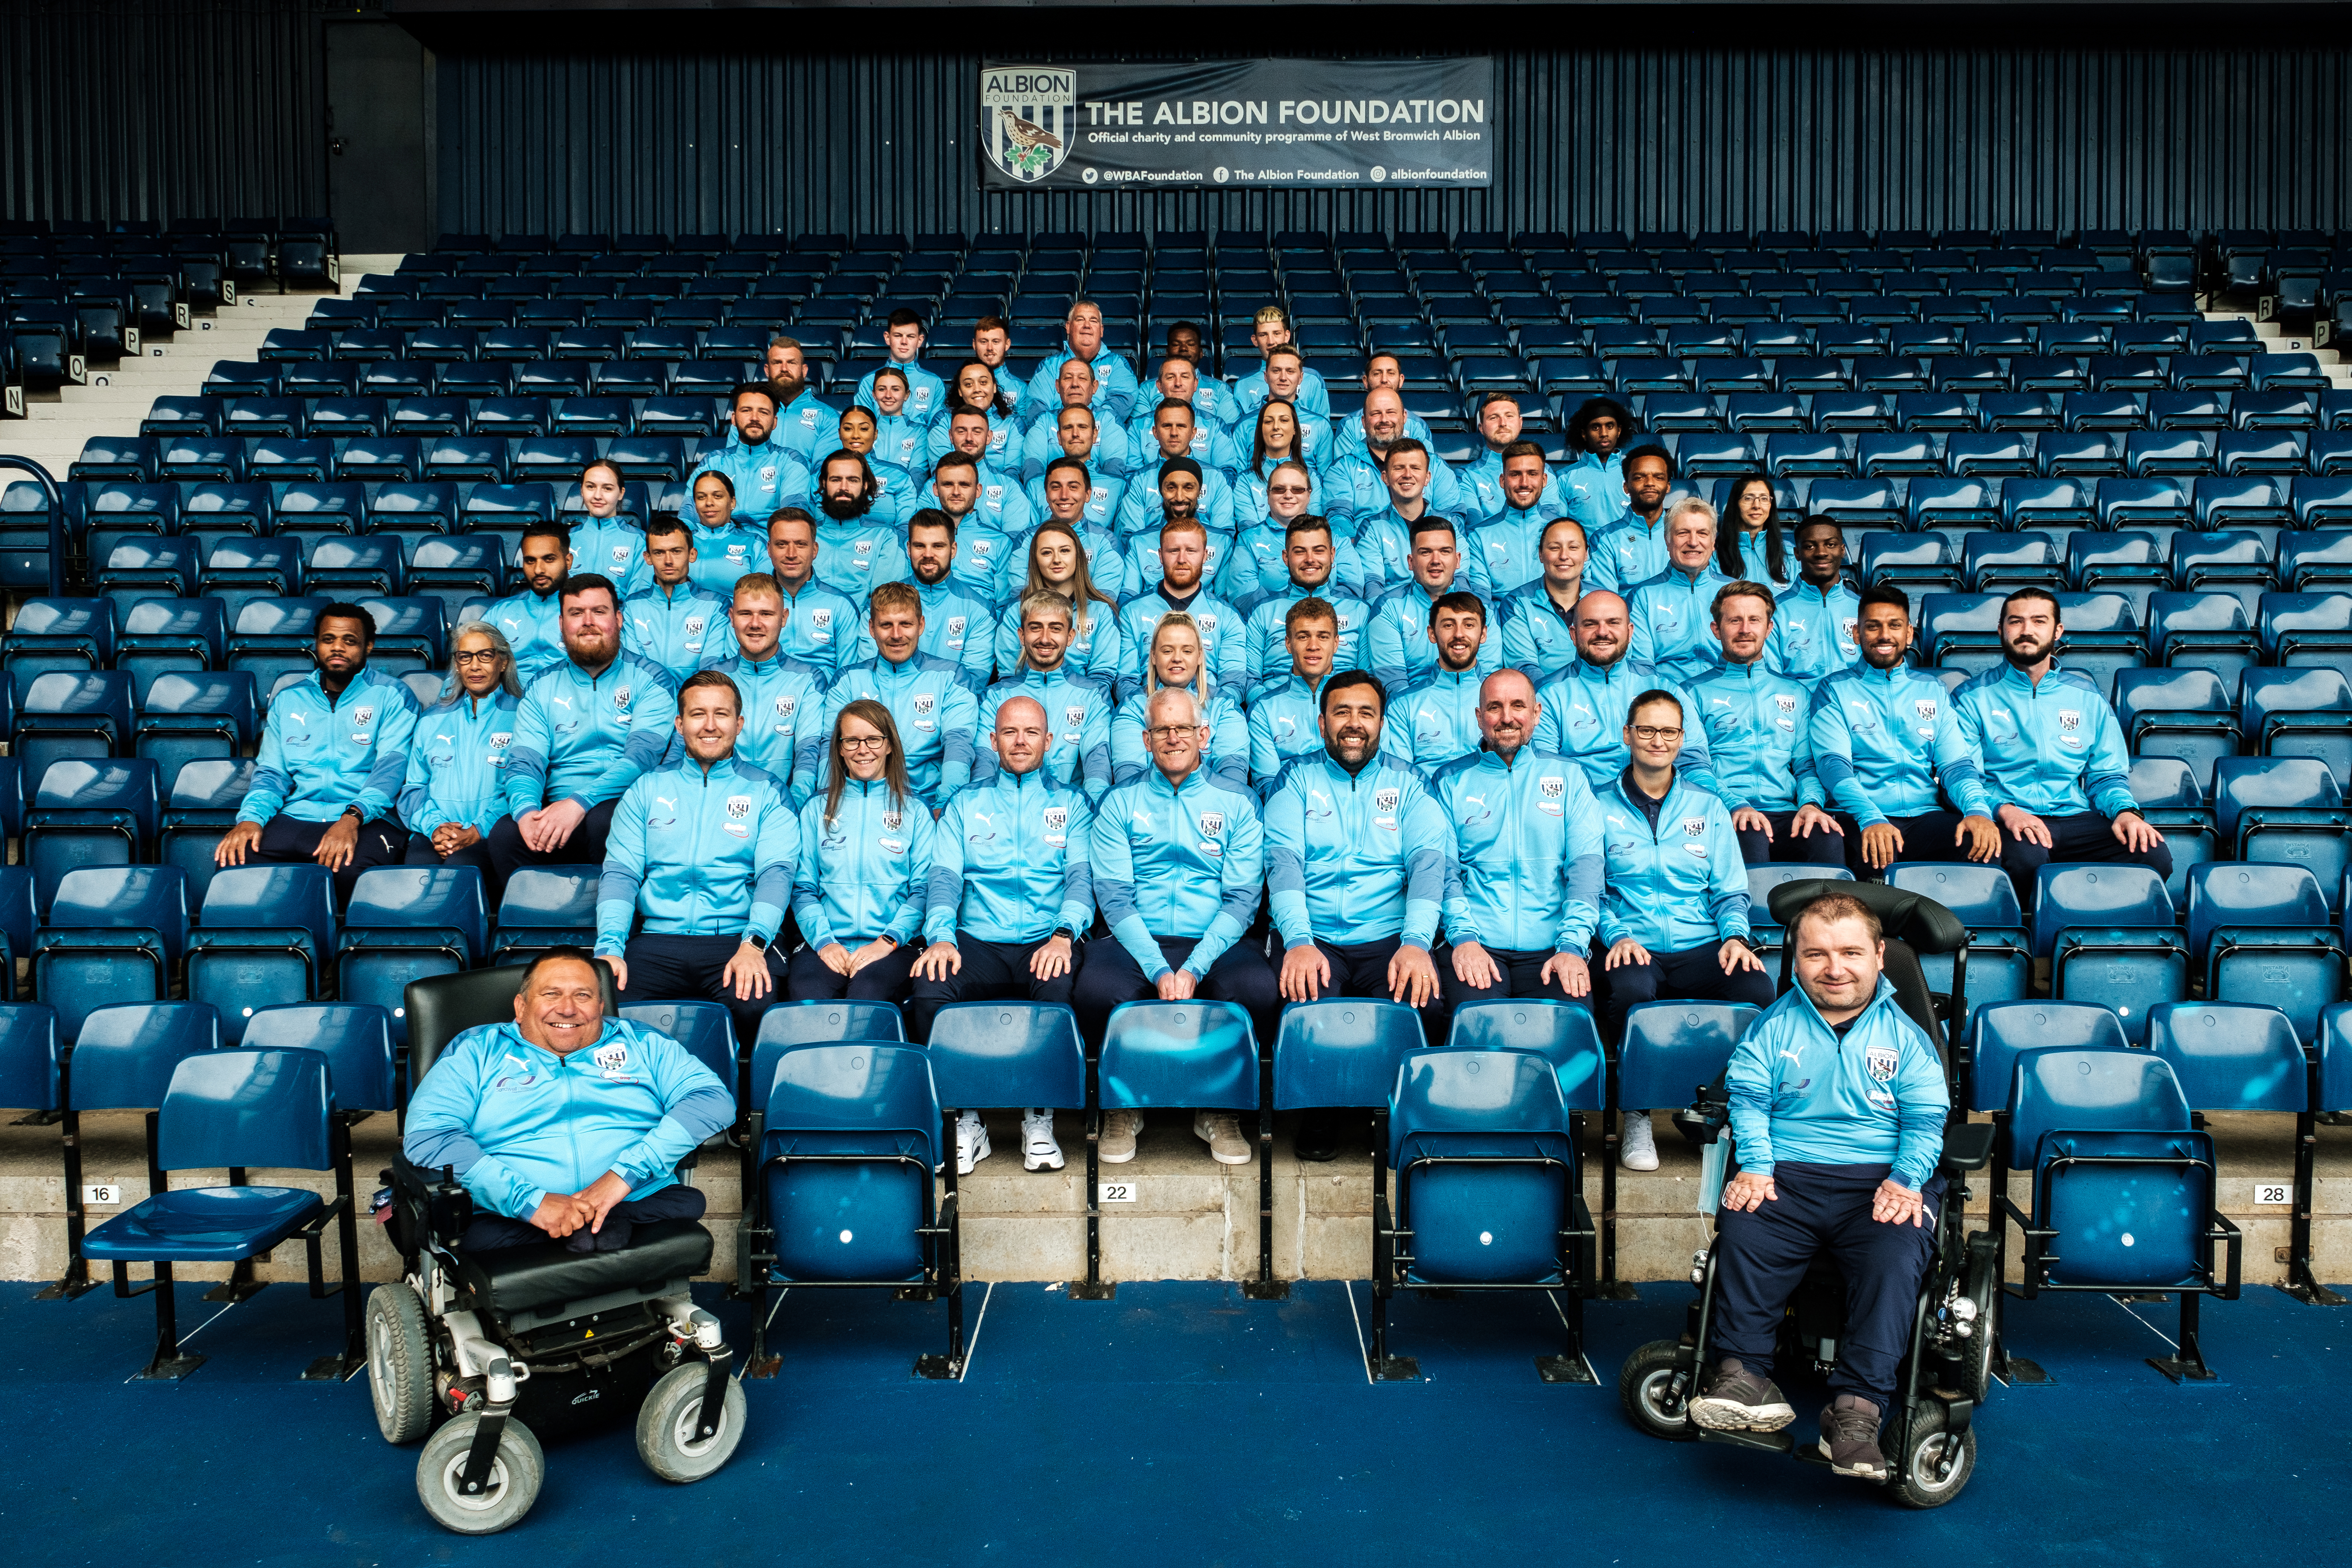 The Albion Foundation All Staff 2021